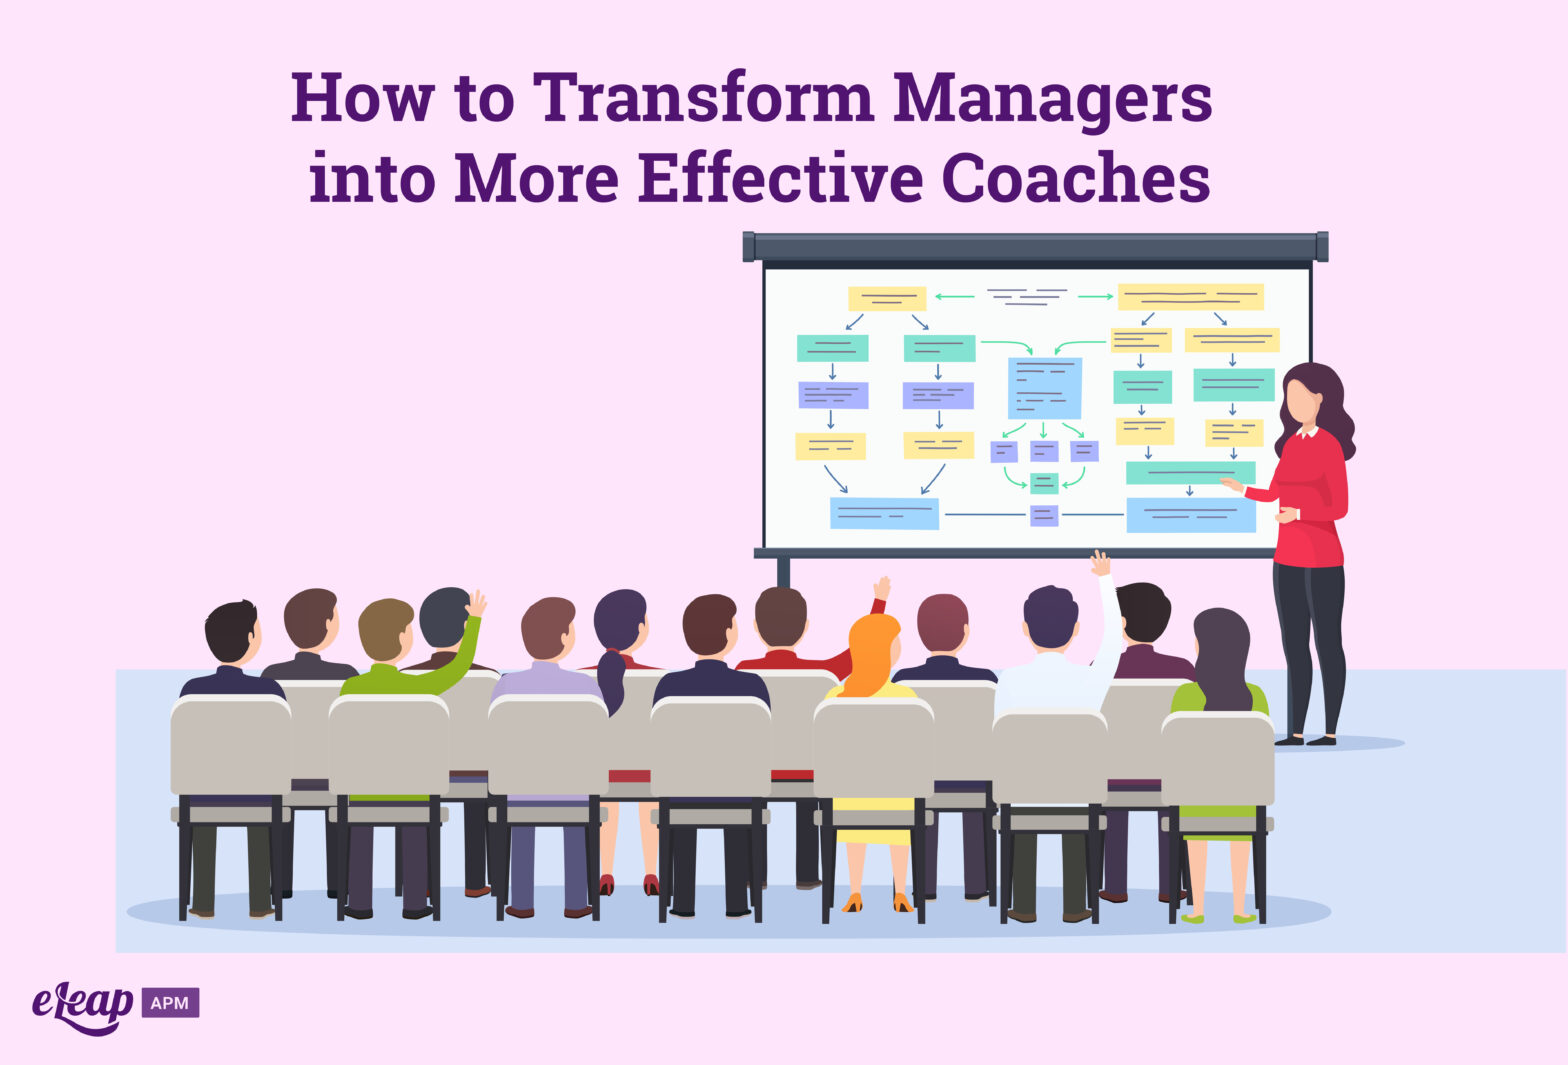 How to Transform Managers into More Effective Coaches